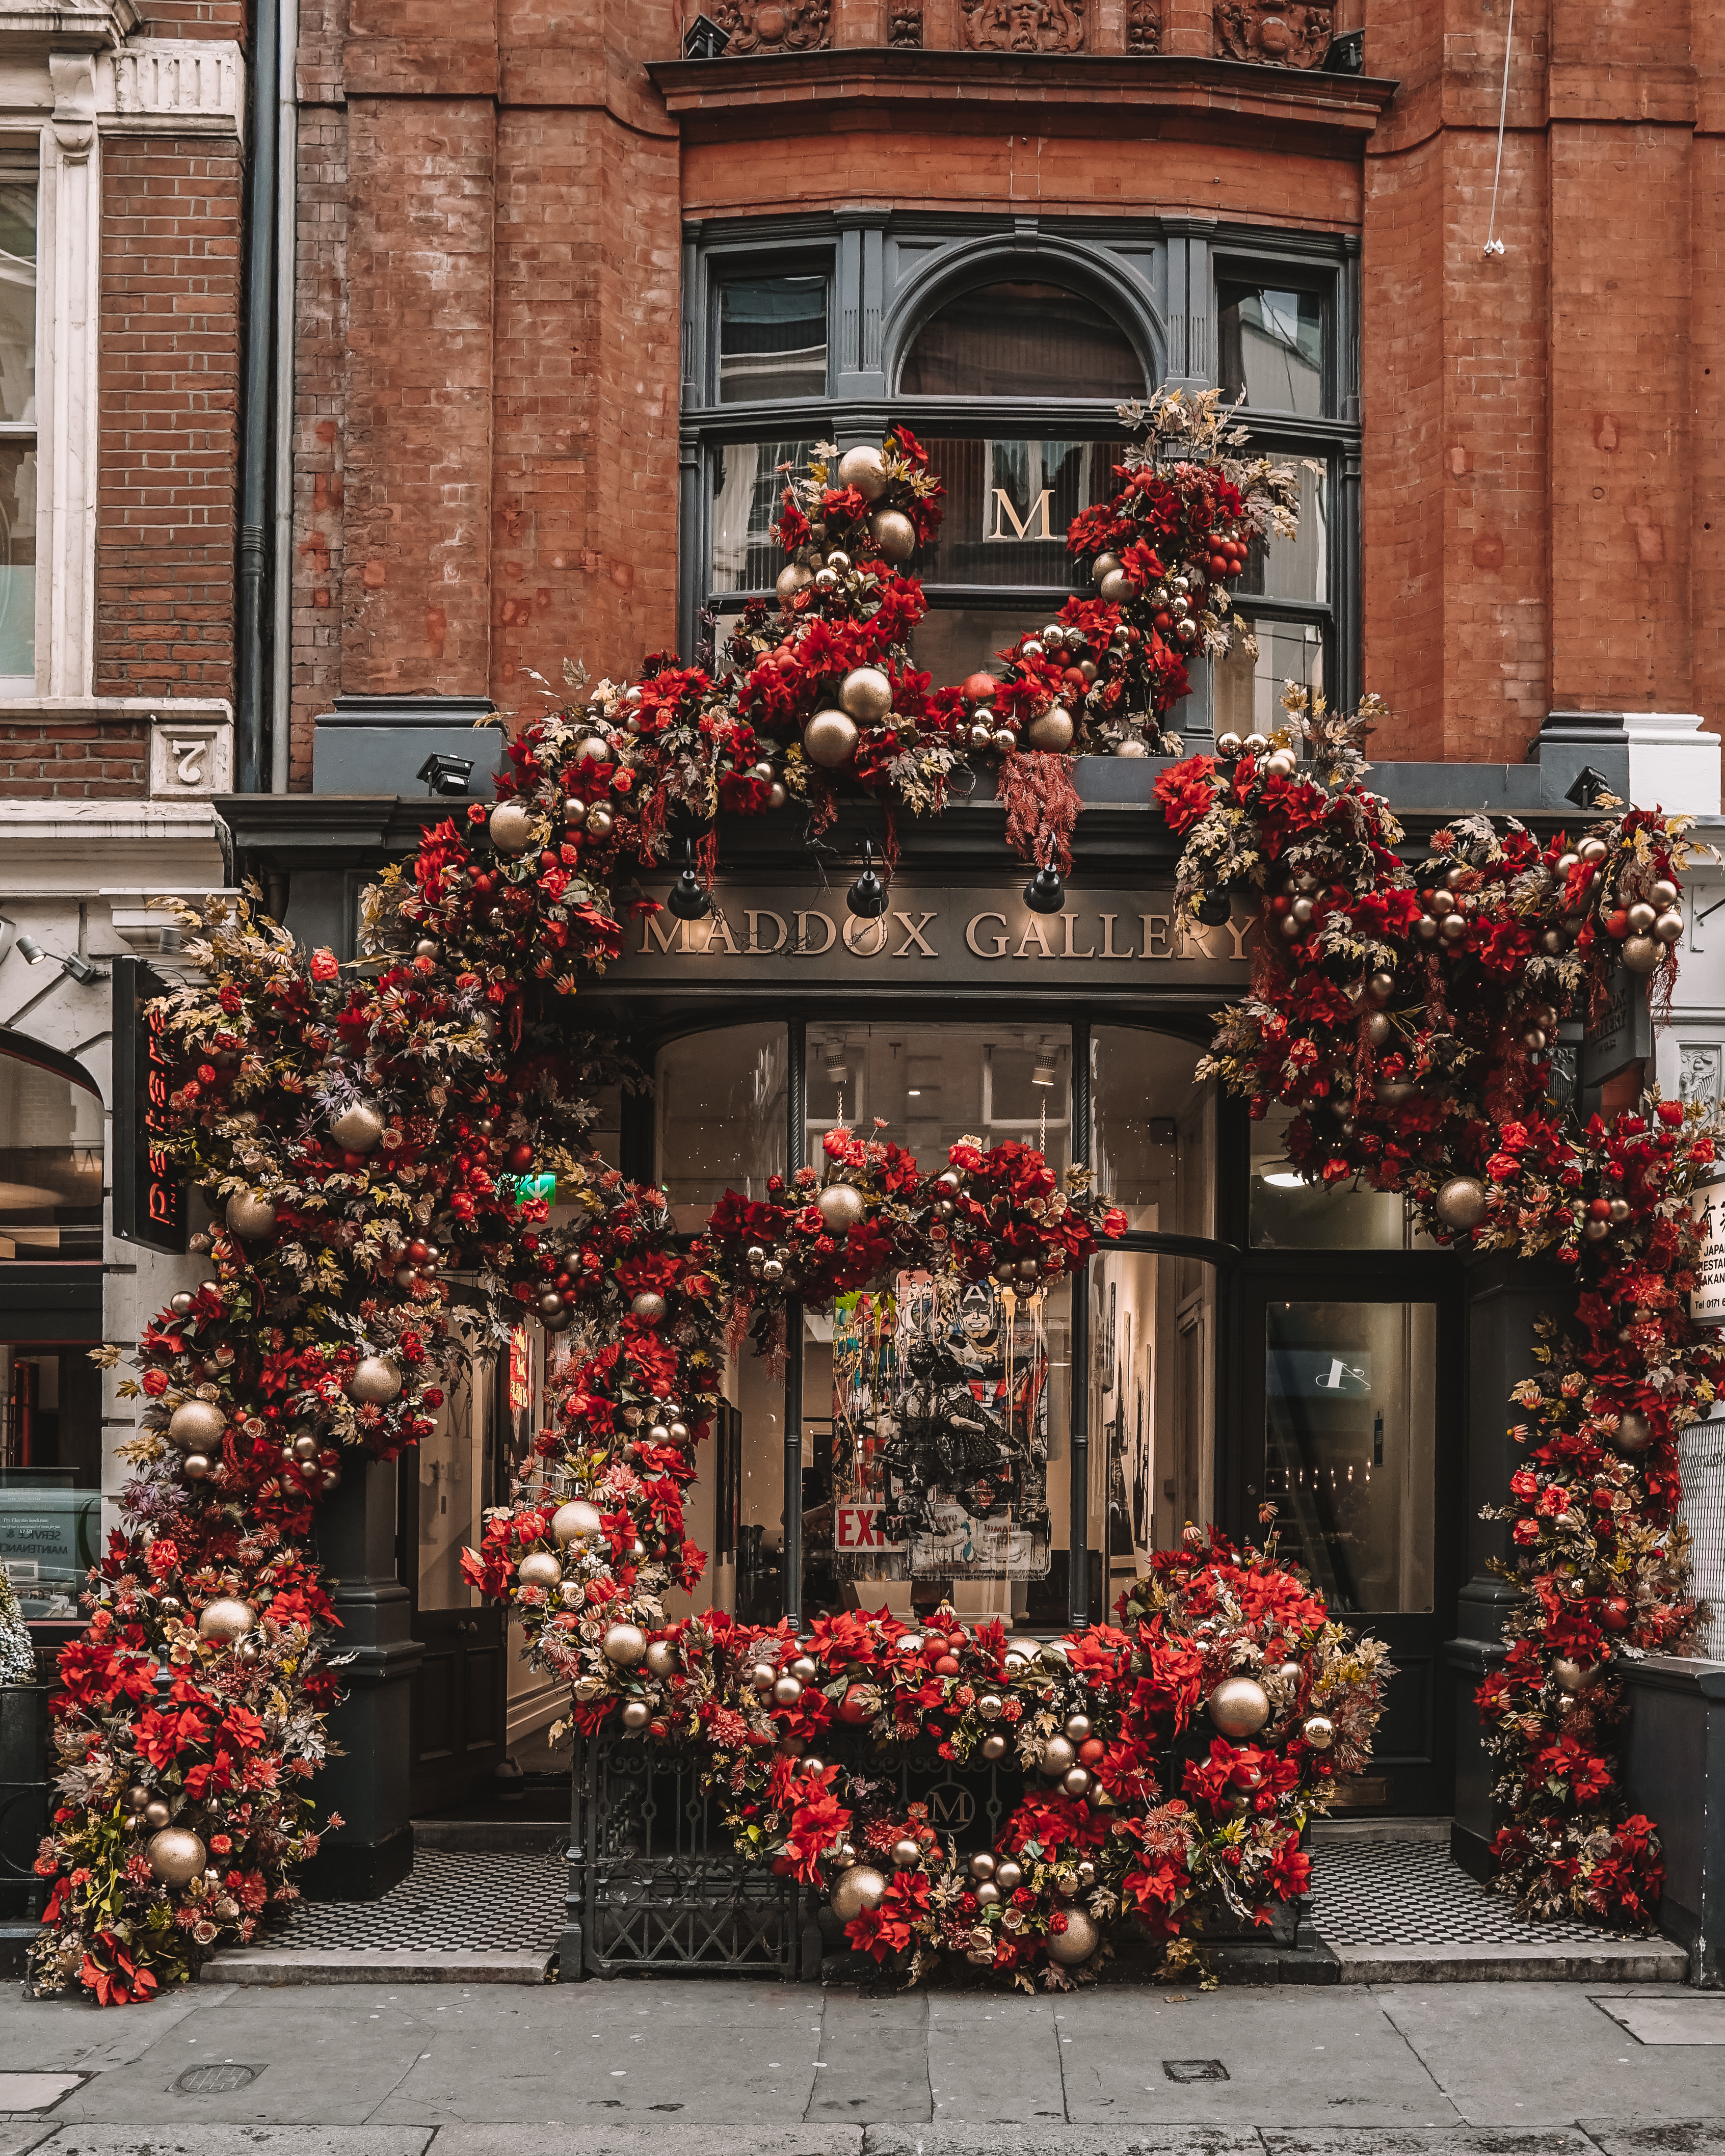 Christmas in London | London's Best Festive Displays | The Maddox Gallery